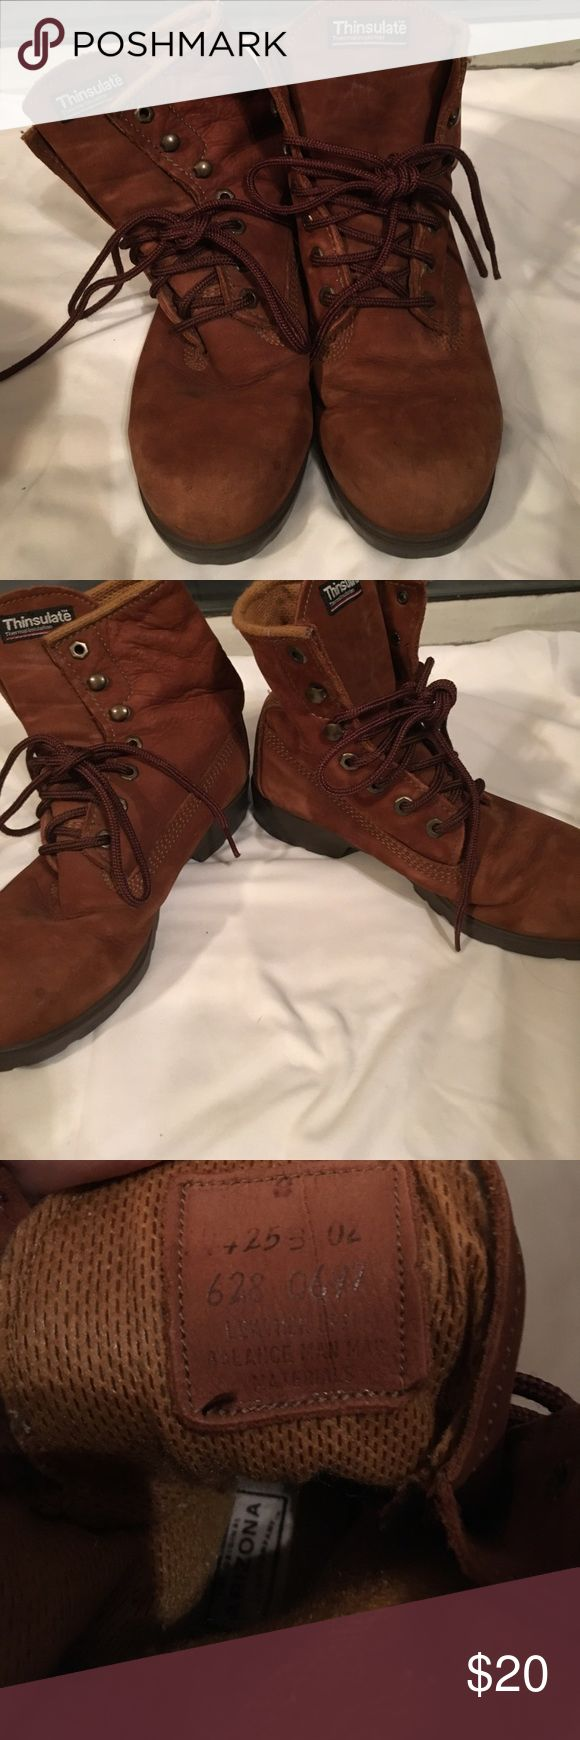 Thinsulate boots Thinsulate boots, size 7 1/2, very nice for winter Arizona Jean Company Shoes Winter & Rain Boots